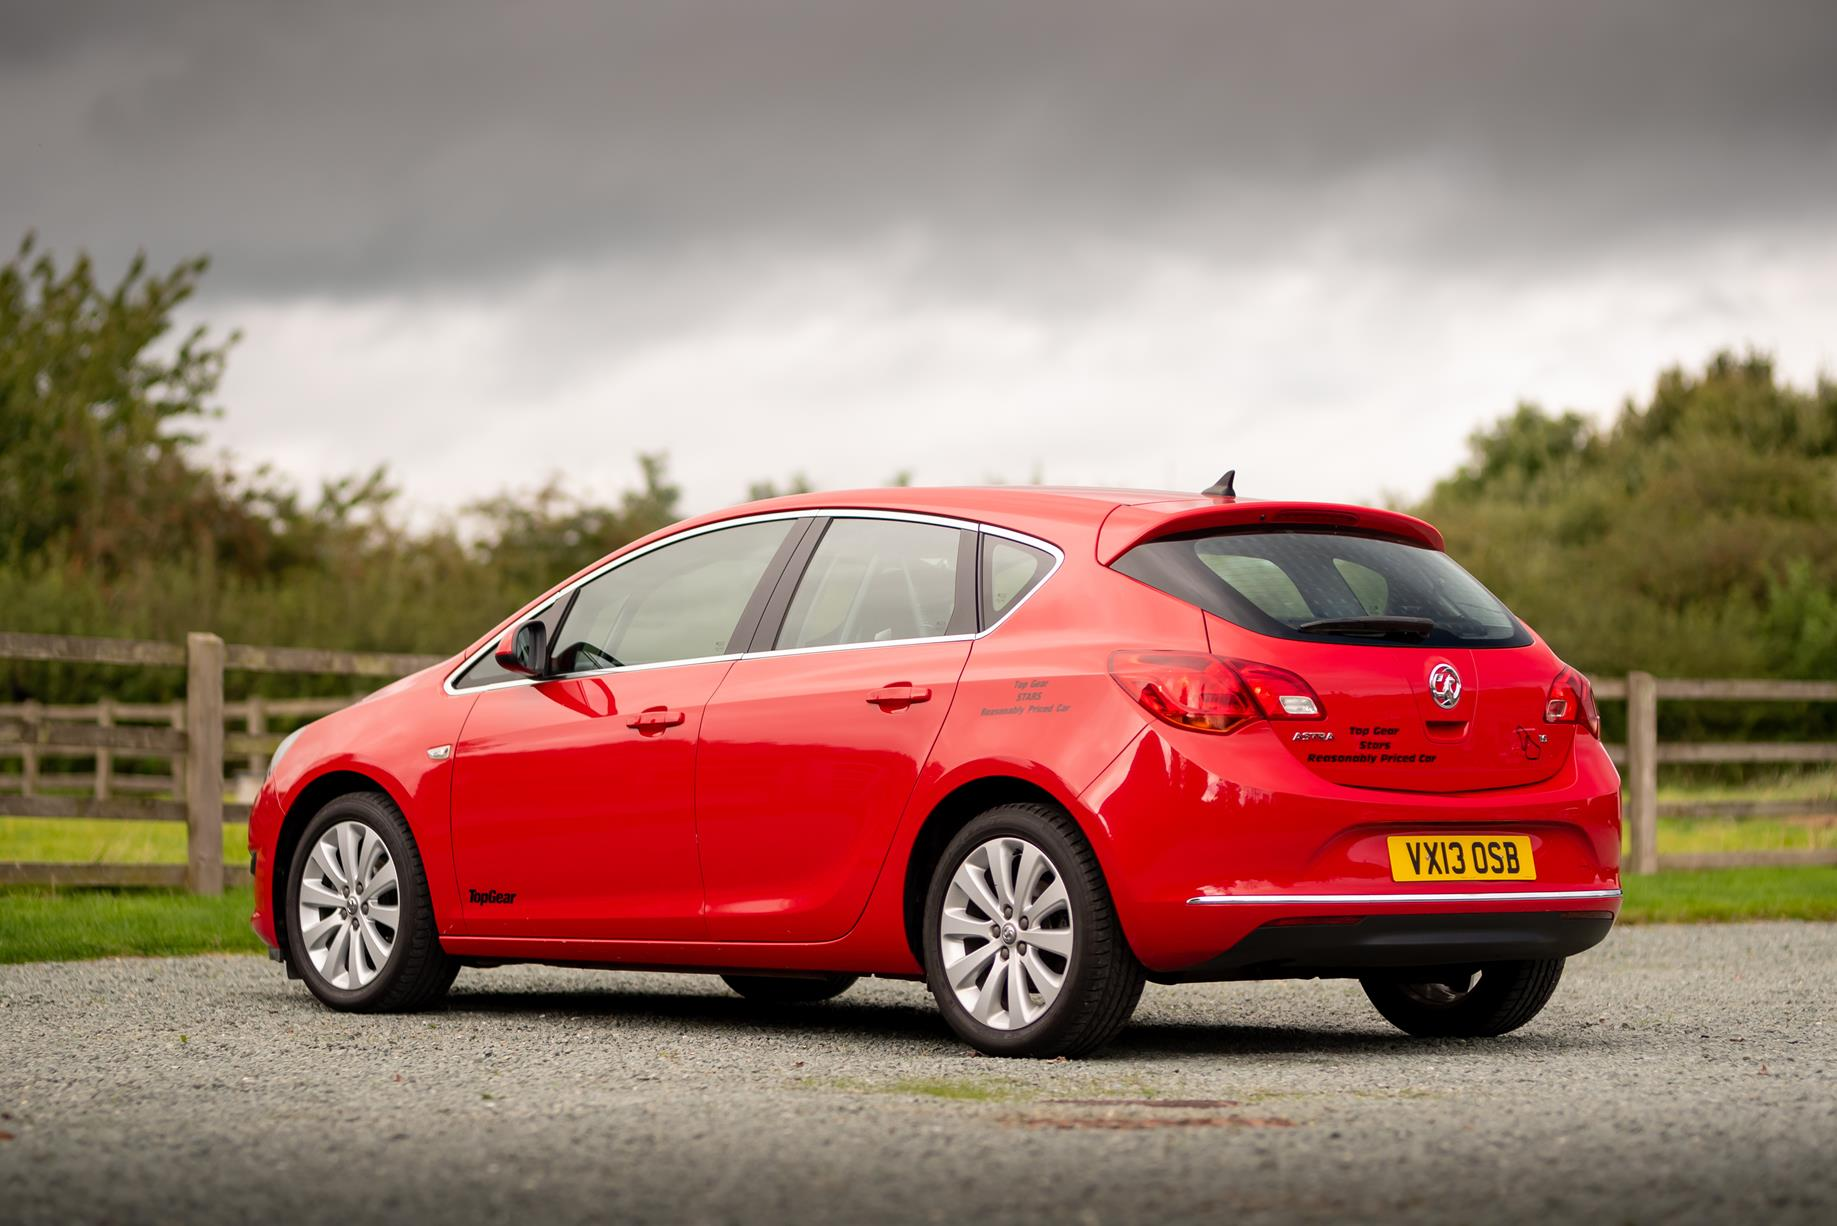 Vauxhall-Astra-Reasonably-Priced-Car-for-sale-3